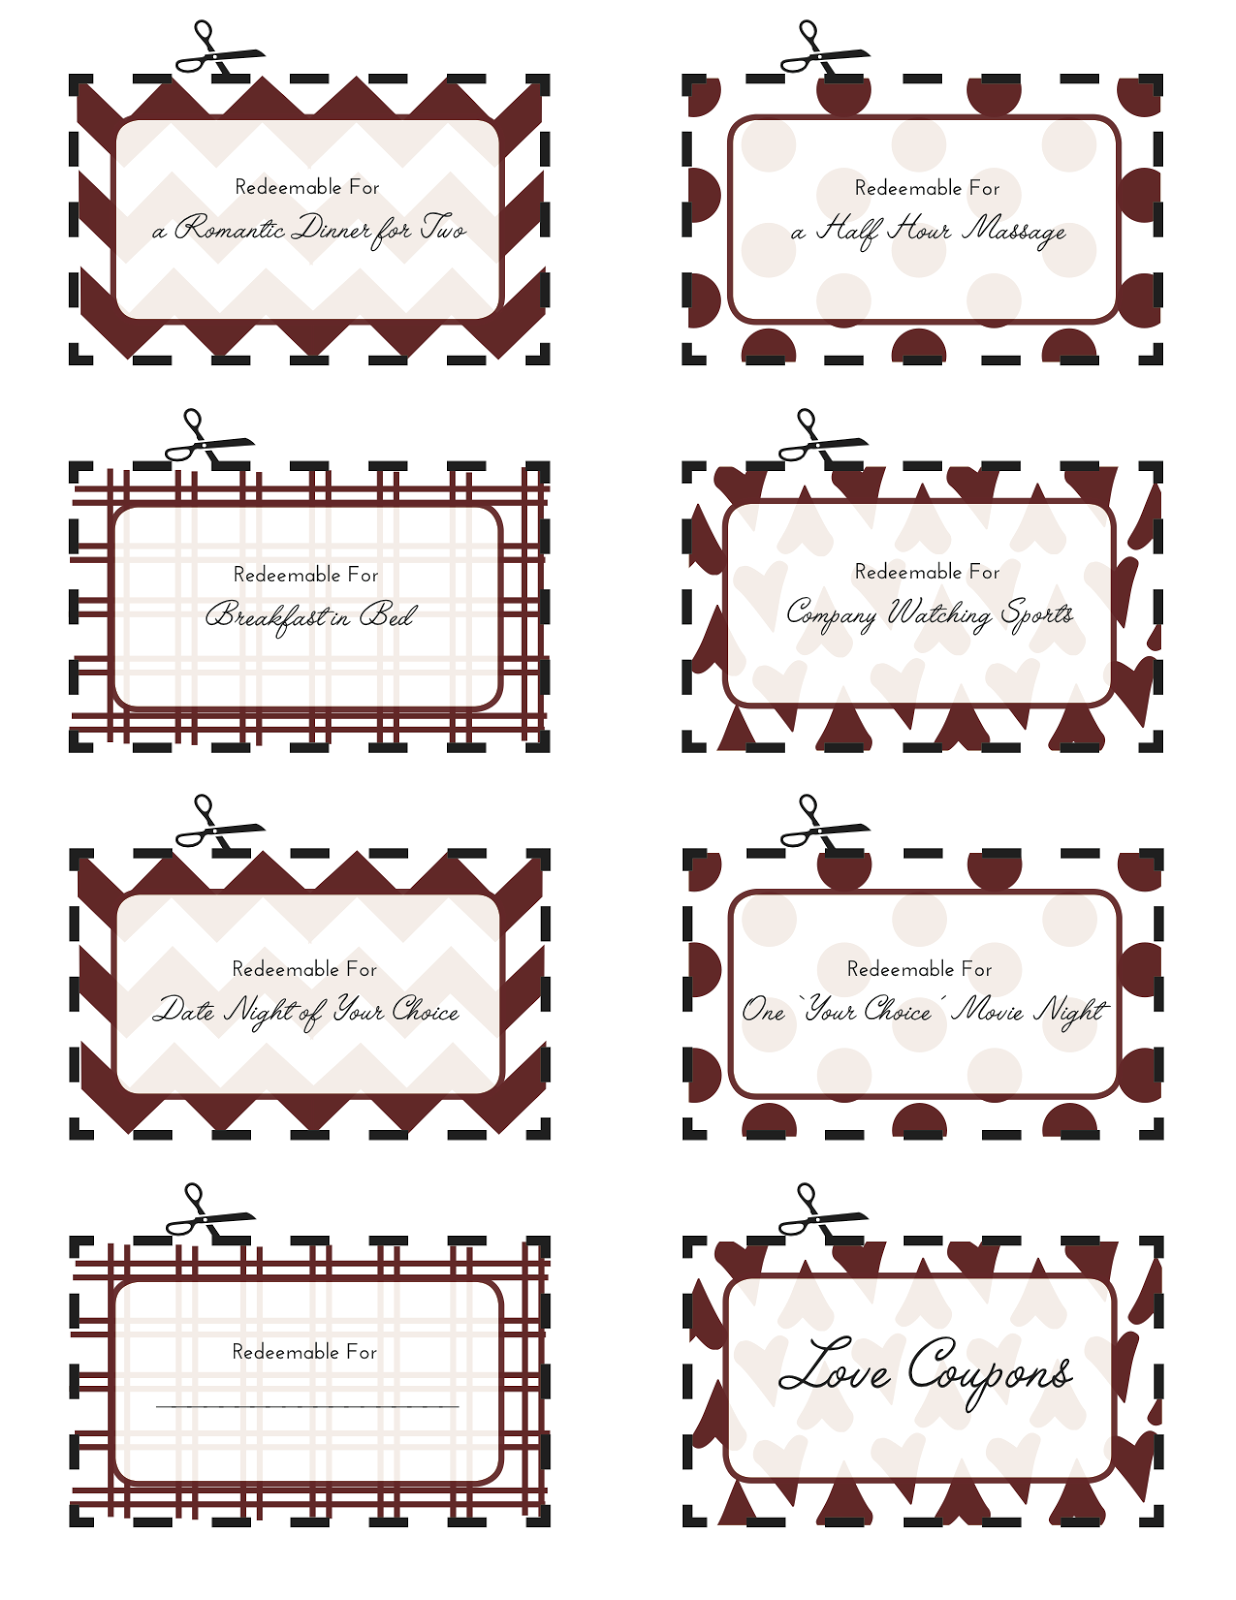 Love coupons for him printable free